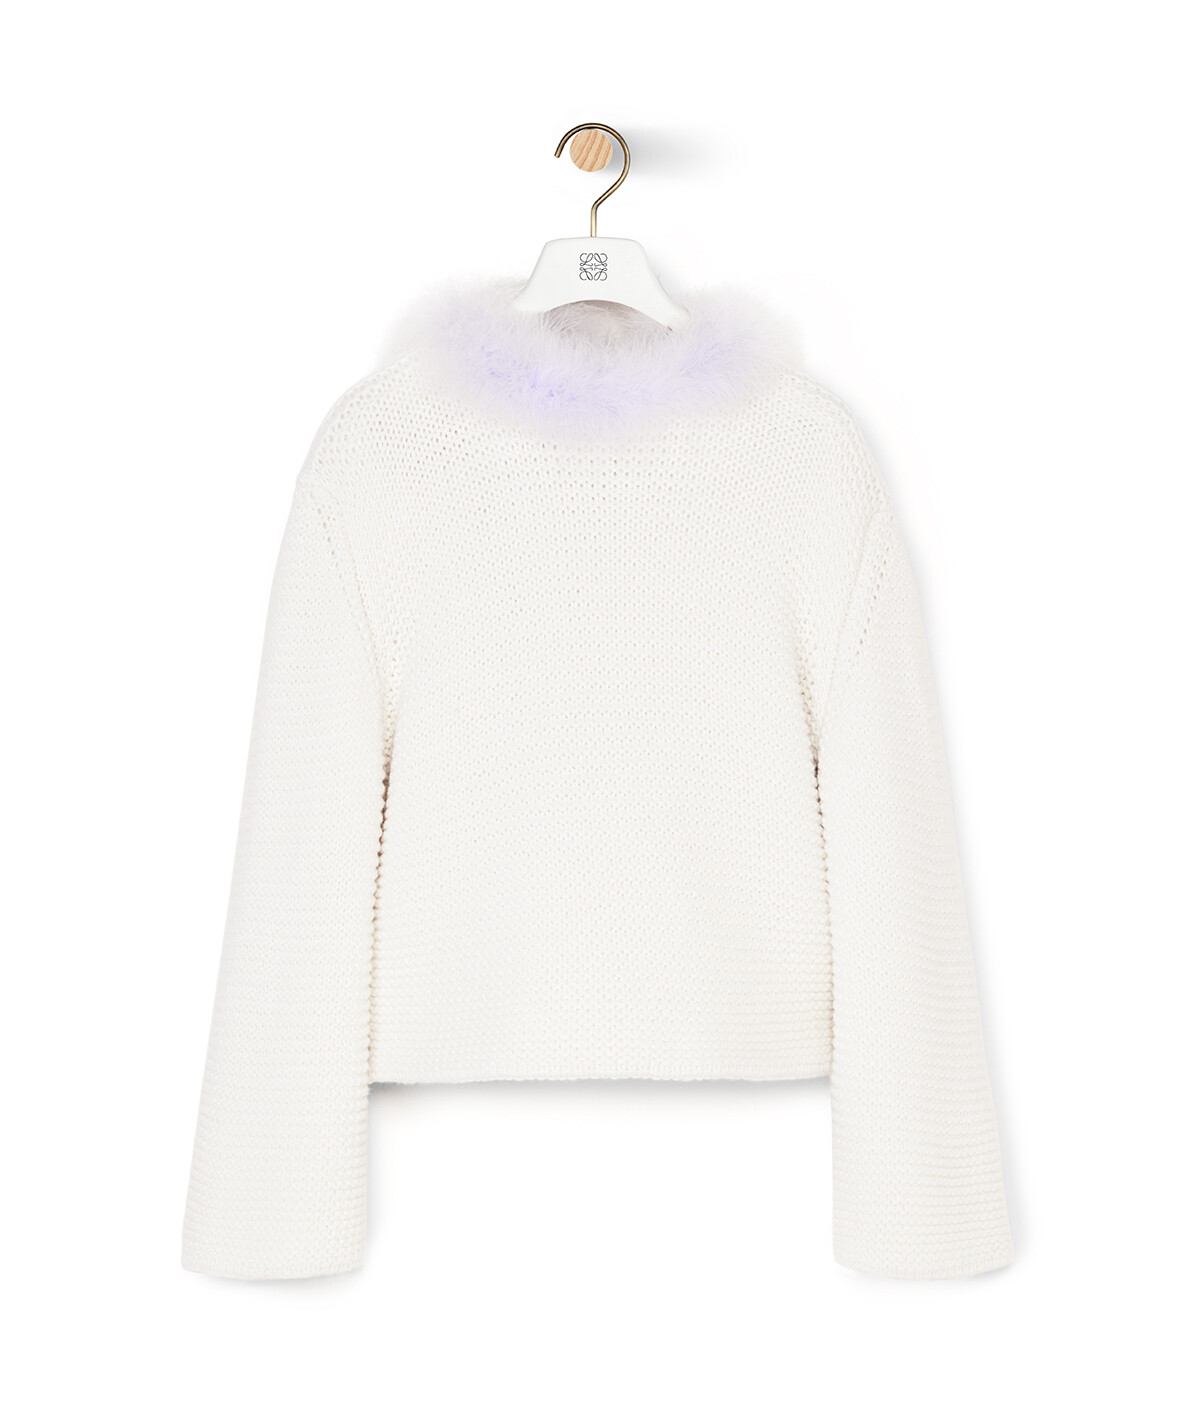 LOEWE Feather Trim Sweater White/Purple front